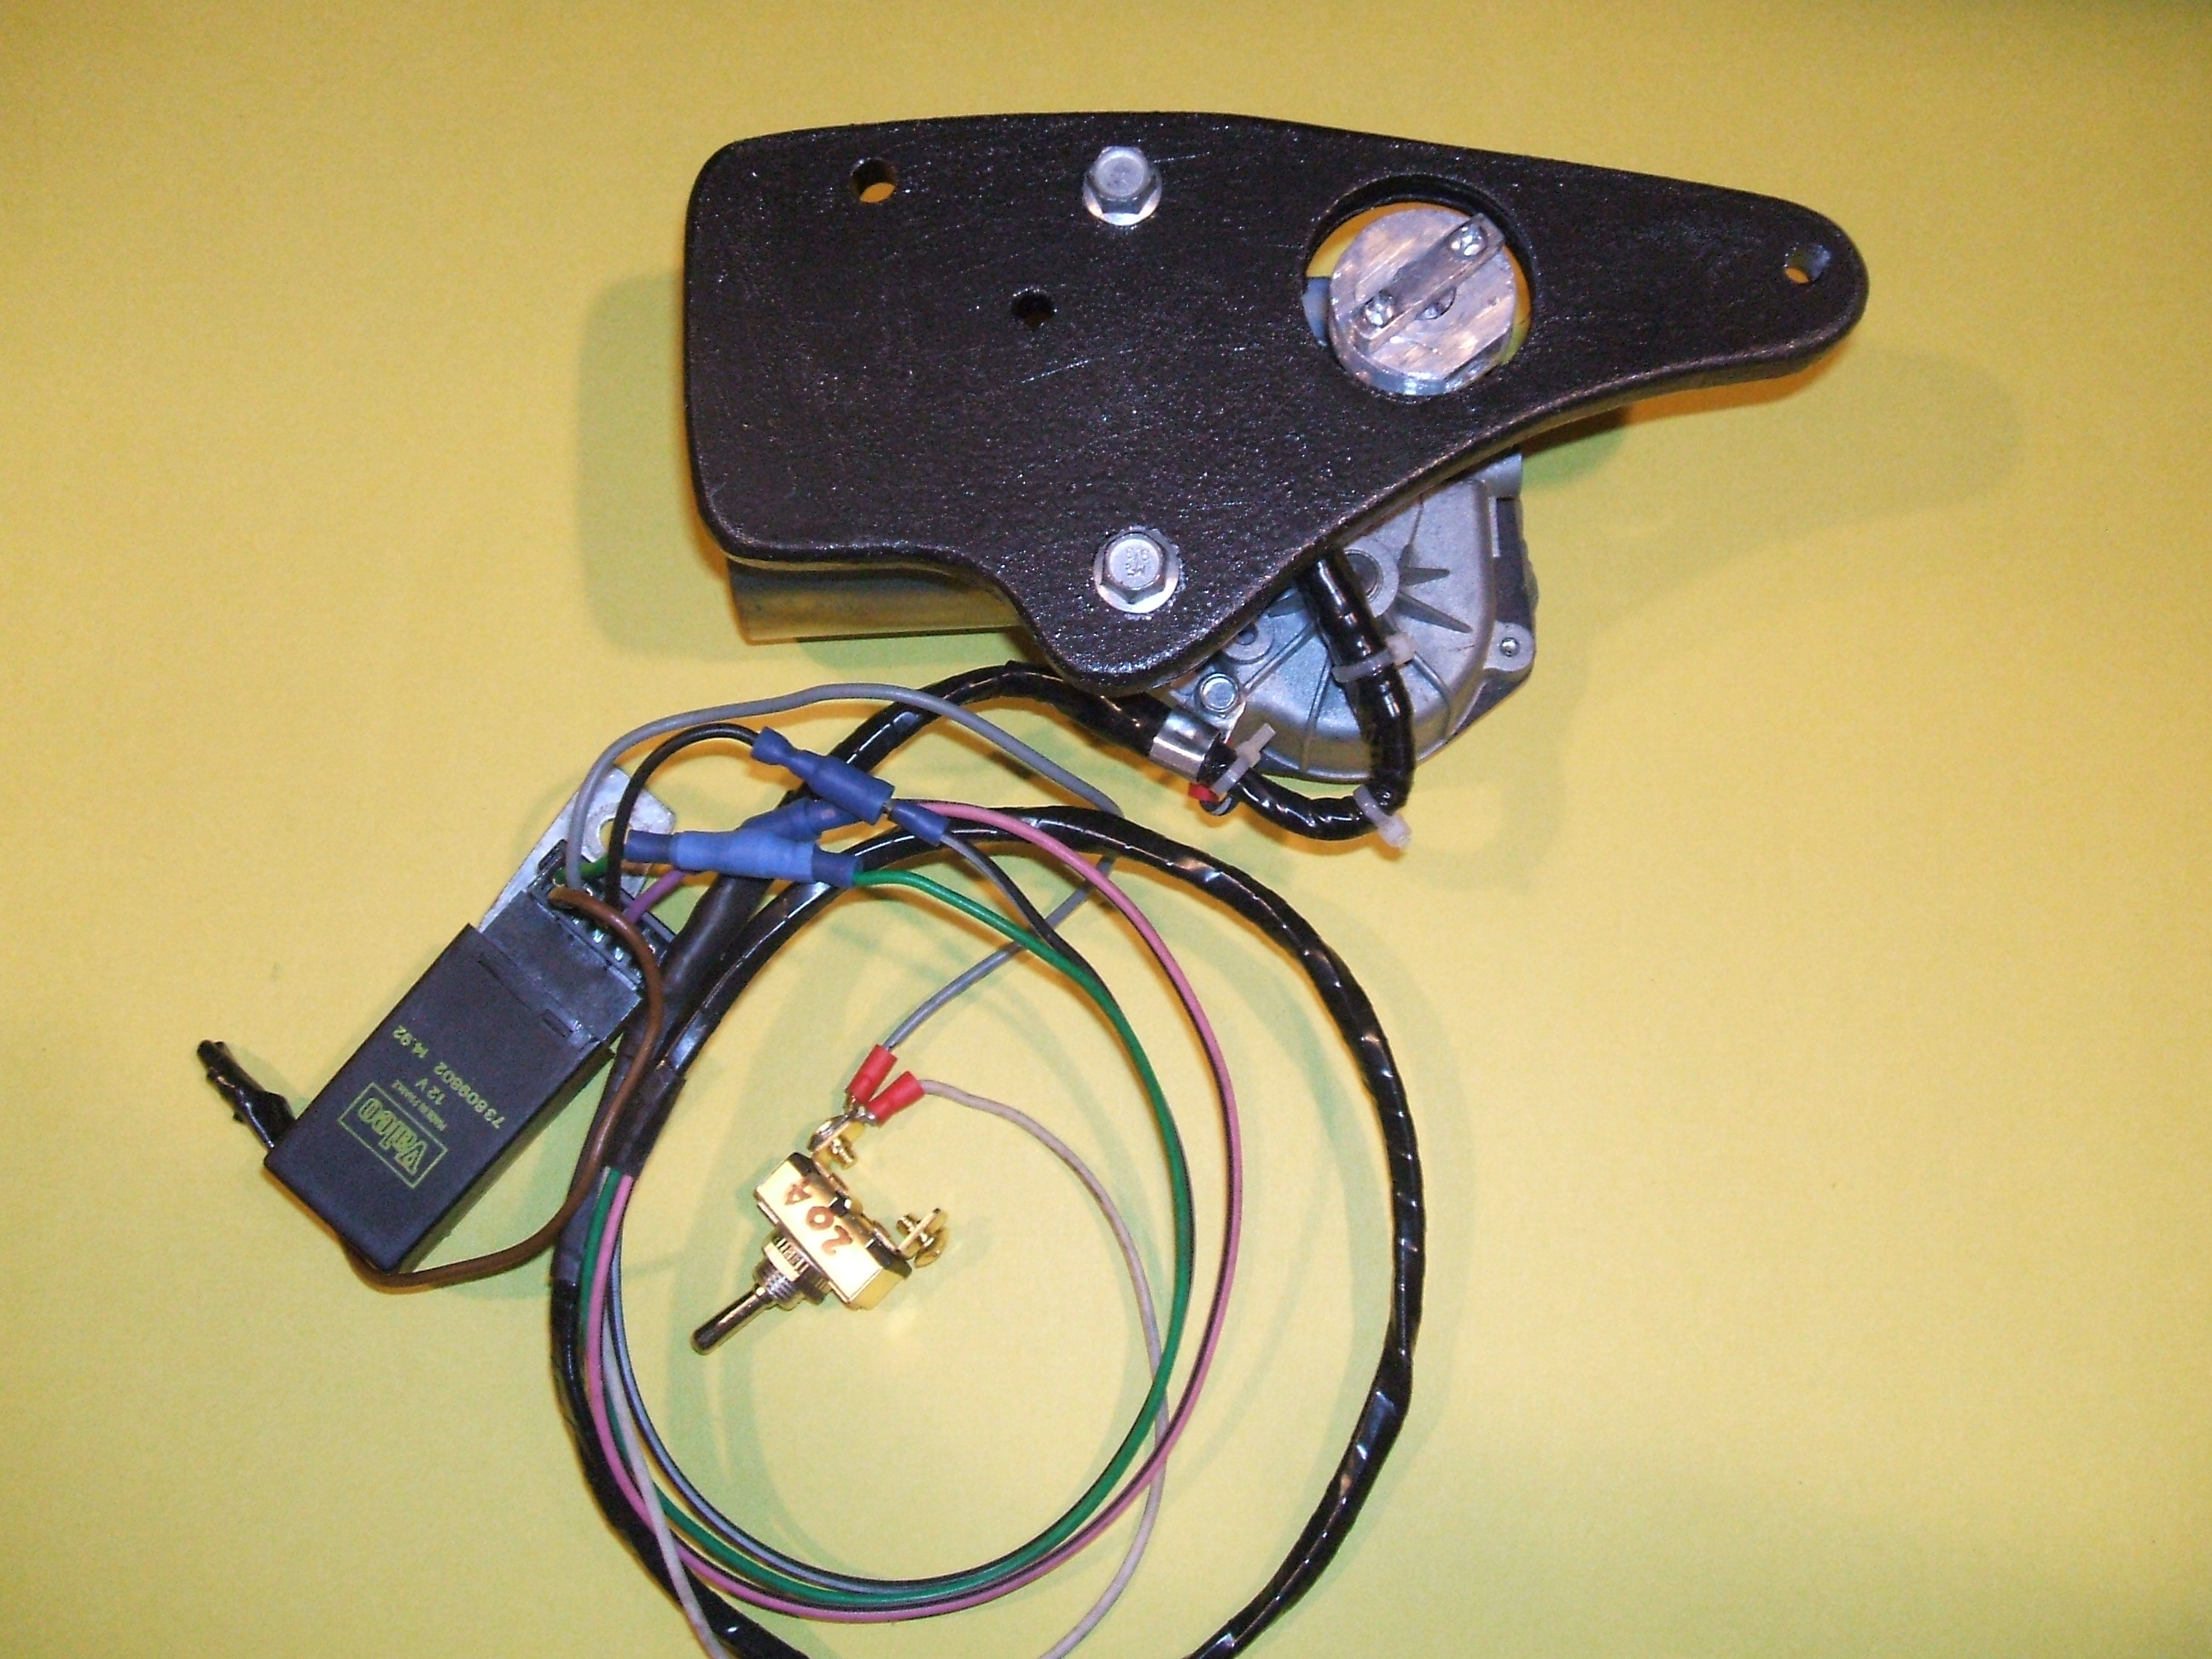 Picture of Test the Completed Wiring Prior to Installation